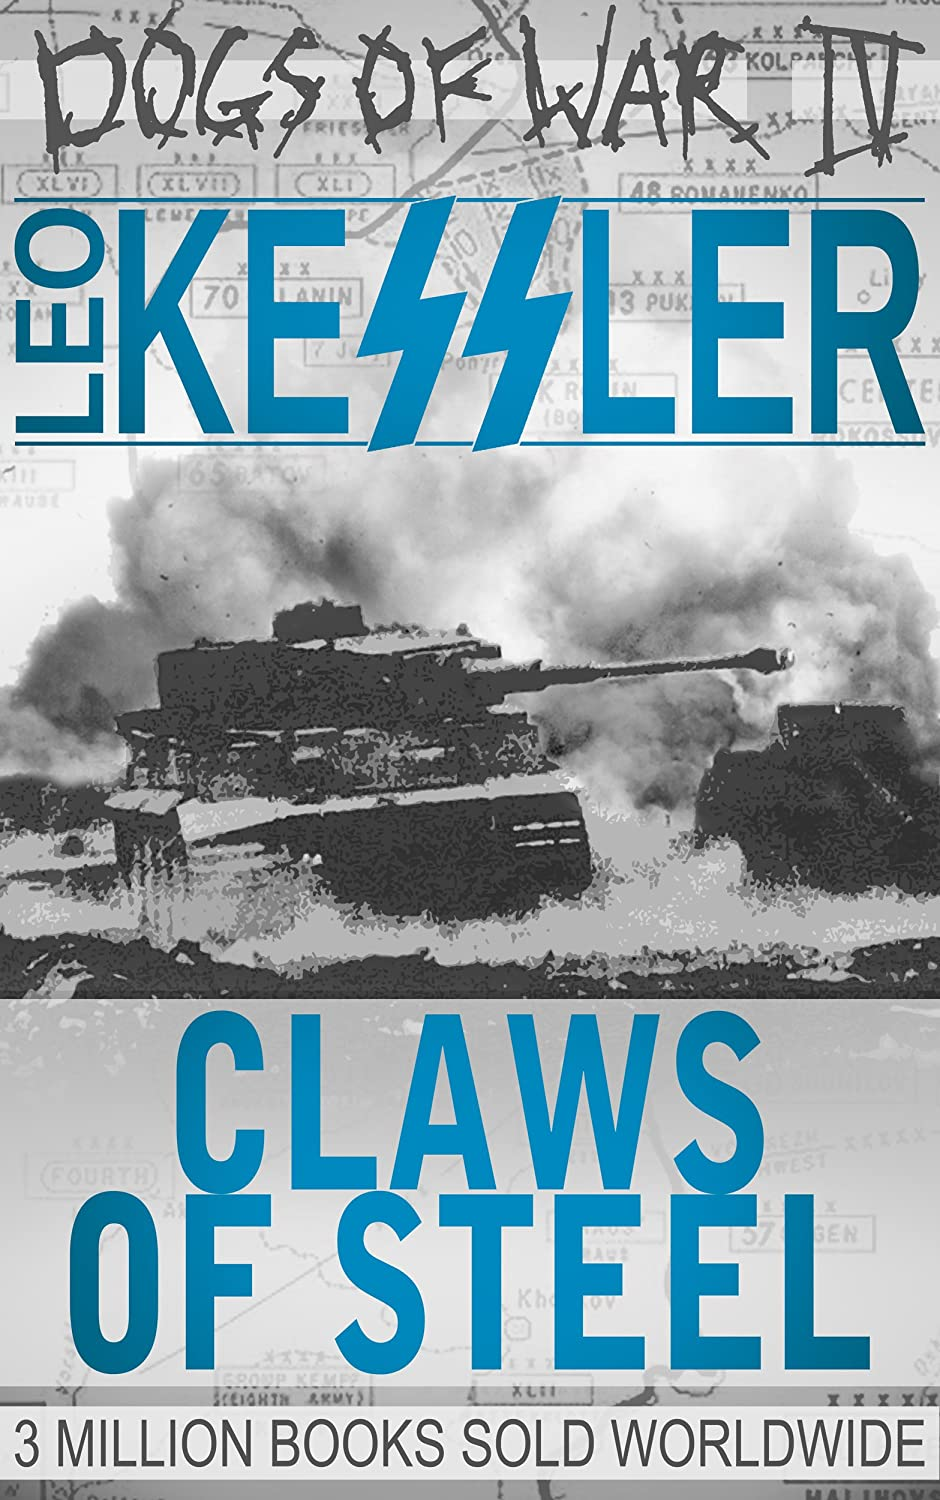 Claws Of Steel: Tiger Tanks in the Battle of Kursk (Dogs of War